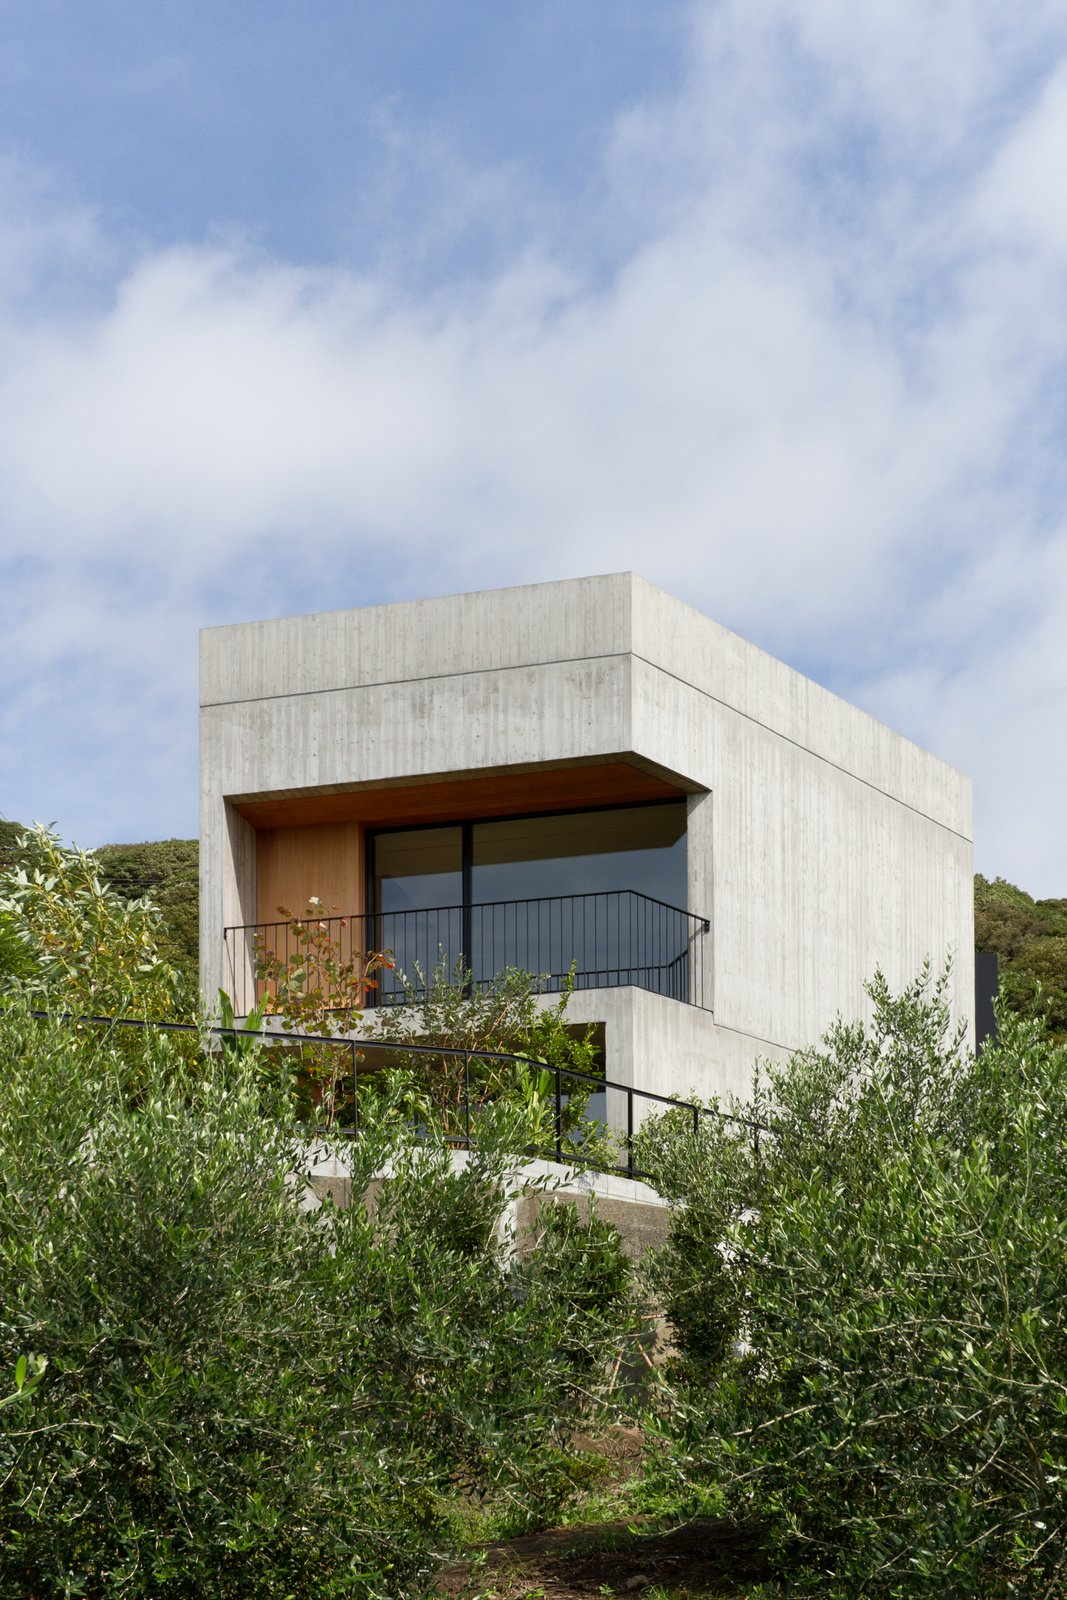 House in Akiya by Nobuo Araki / The Archetype